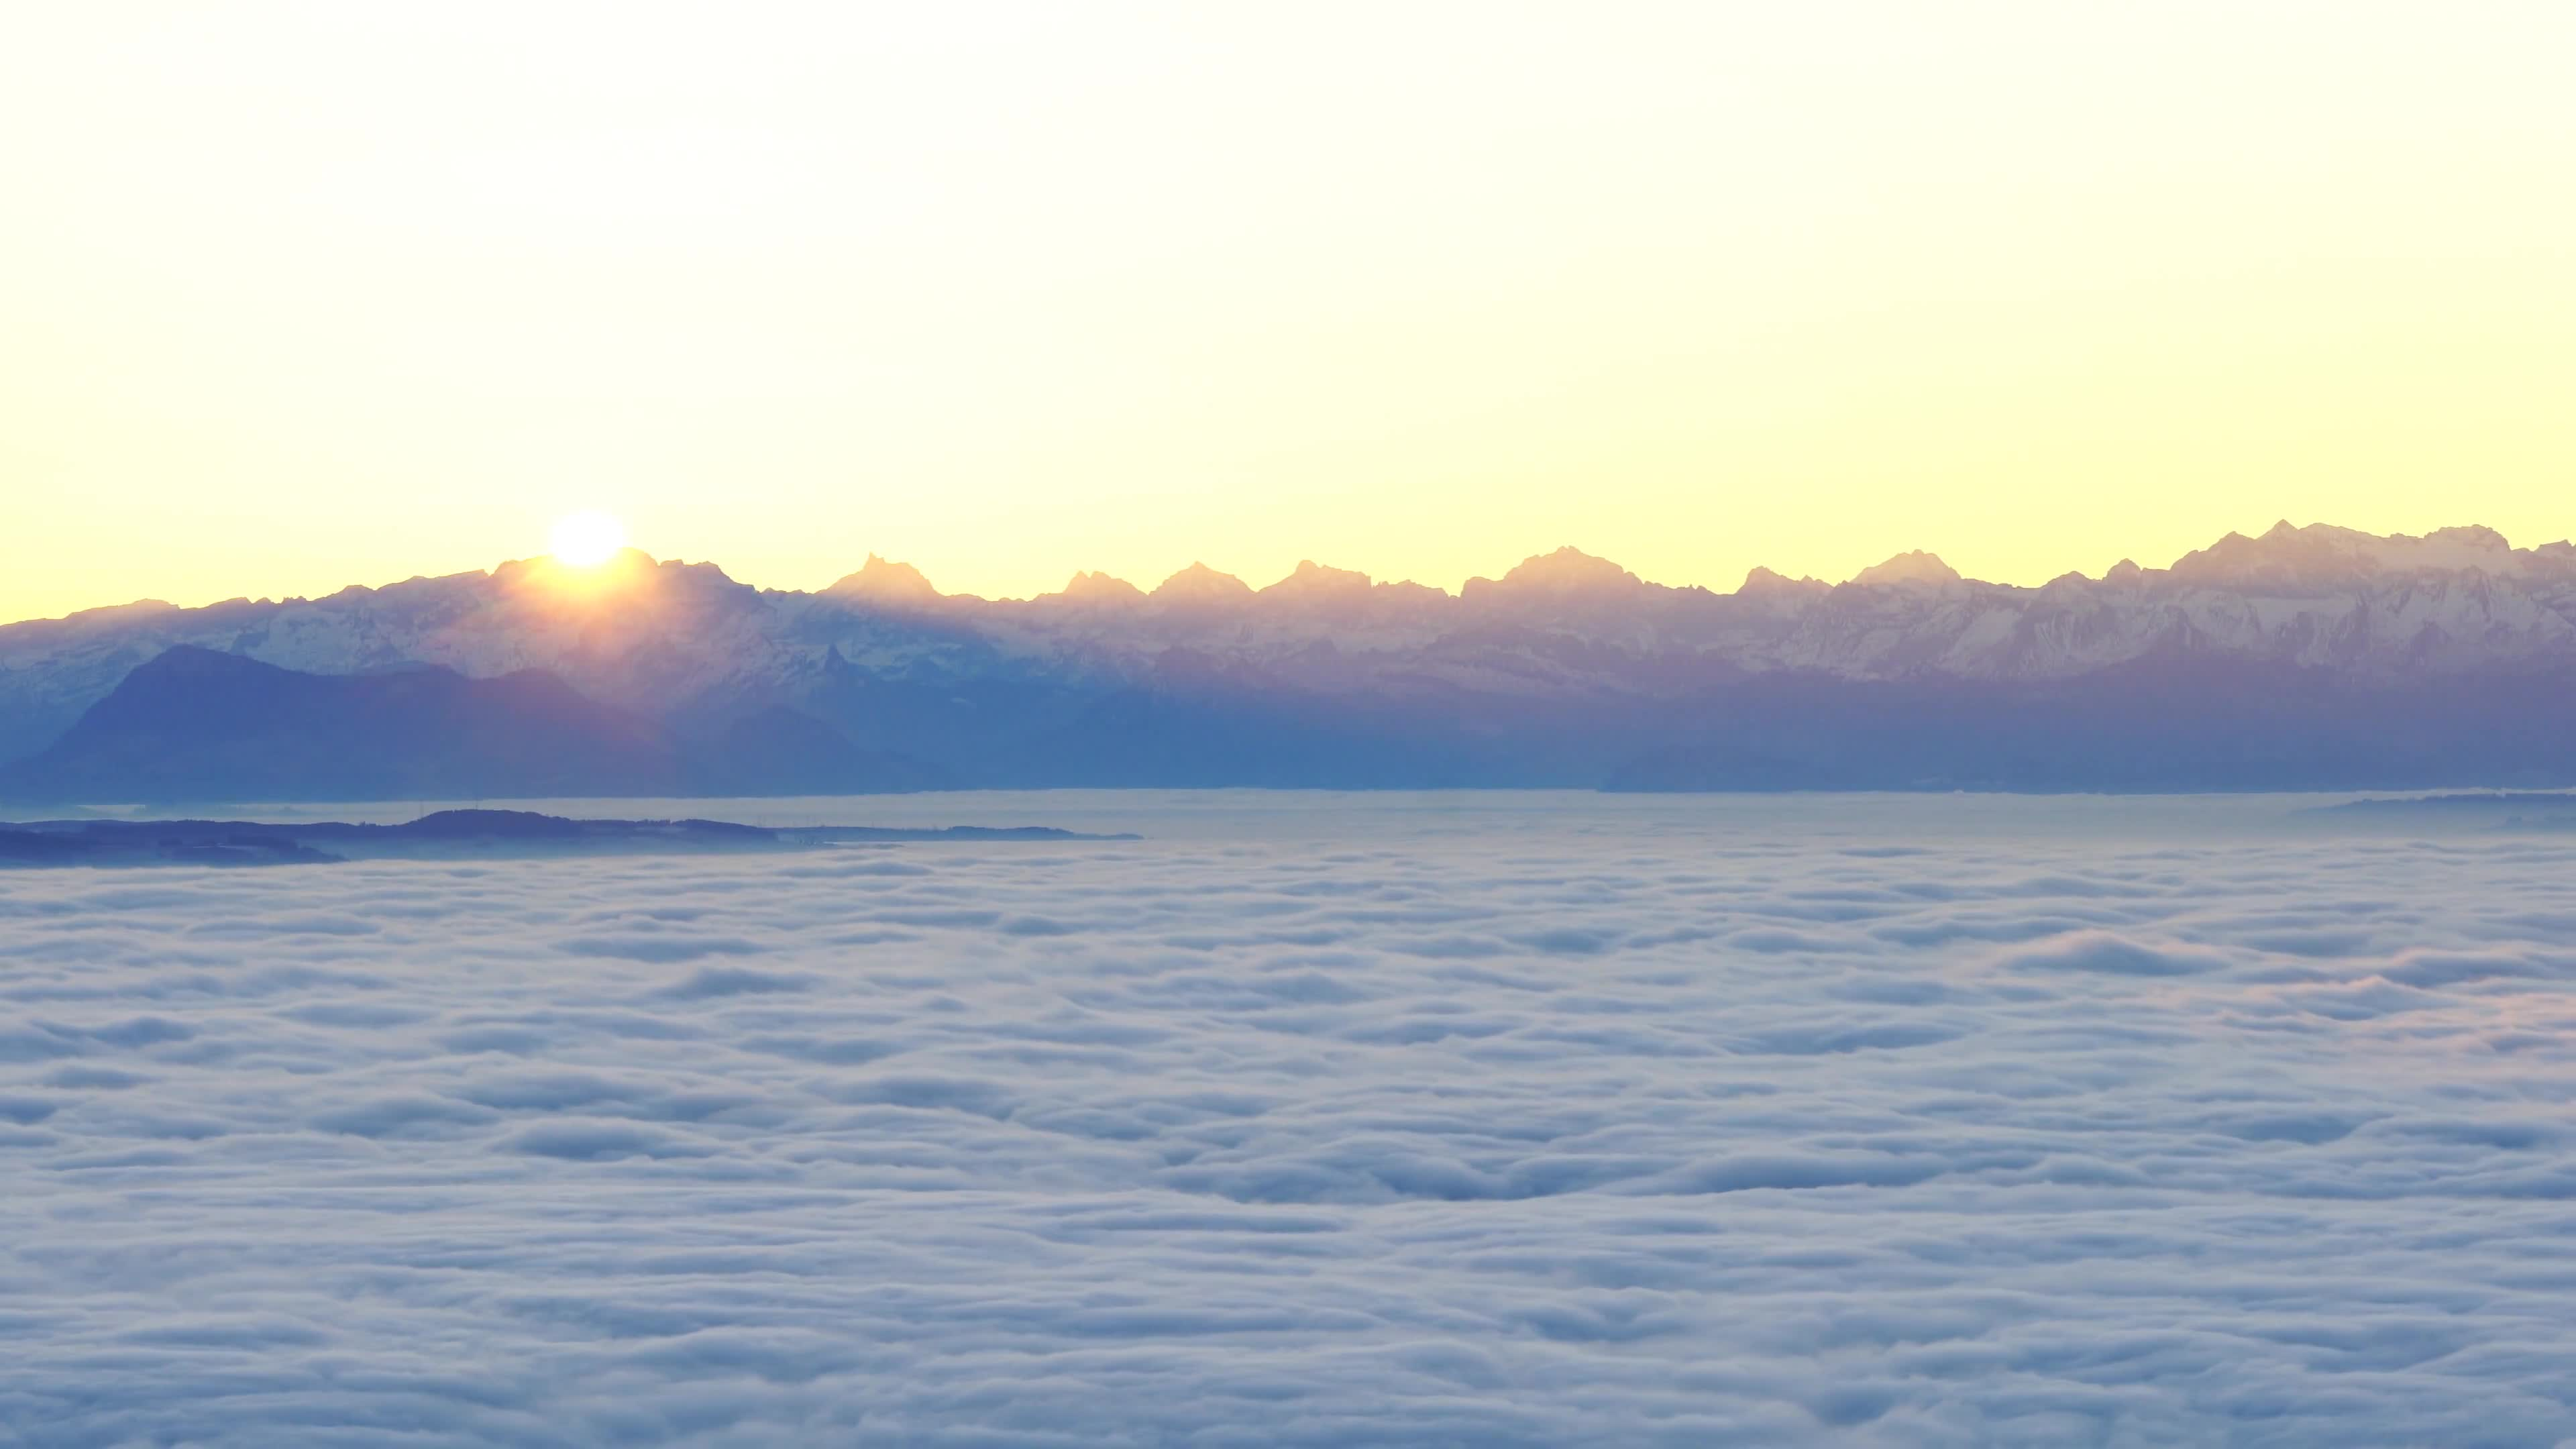 Video of sea of clouds during sunrise